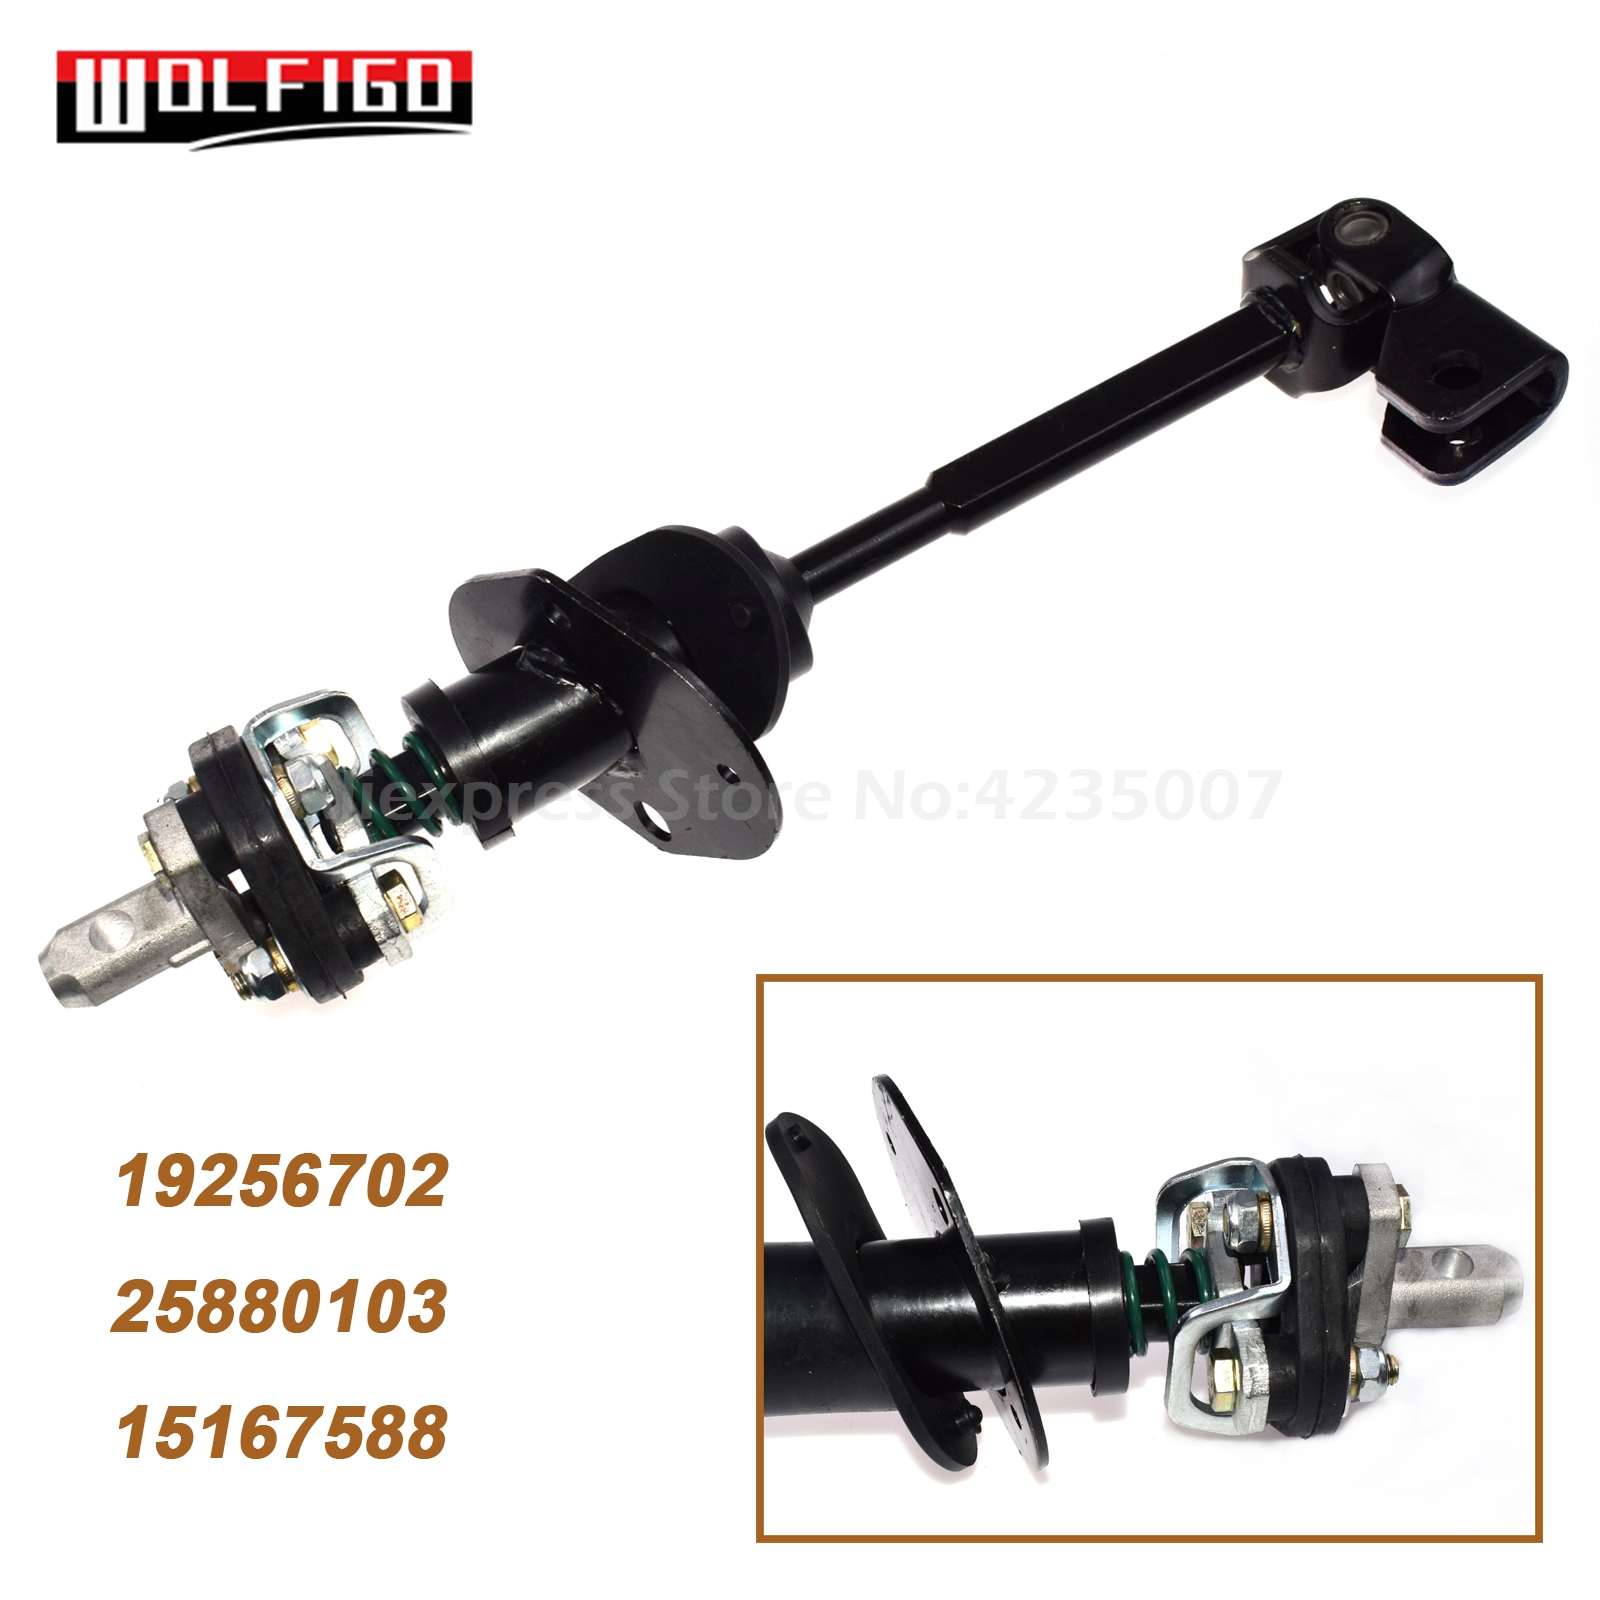 WOLFIGO New For Hummer H3 2006-2010 H3T 2009-10 Steering Column Intermediate Shaft 19256702, 25880103, 15167588(China)